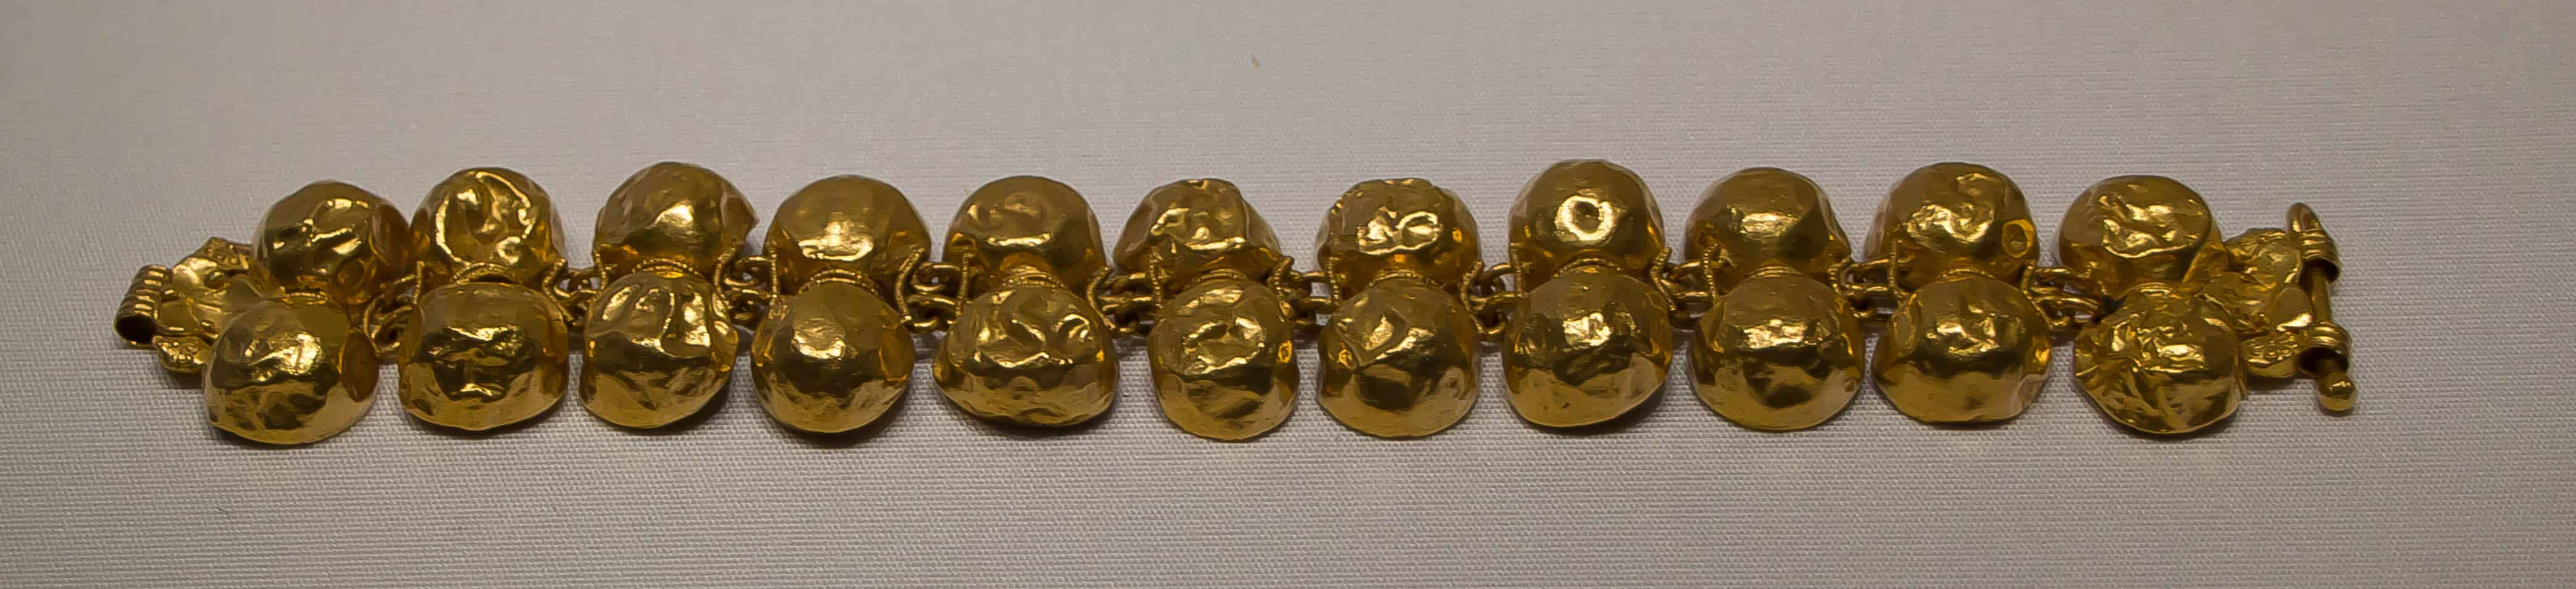 Ancient Golden Bracelet.jpg